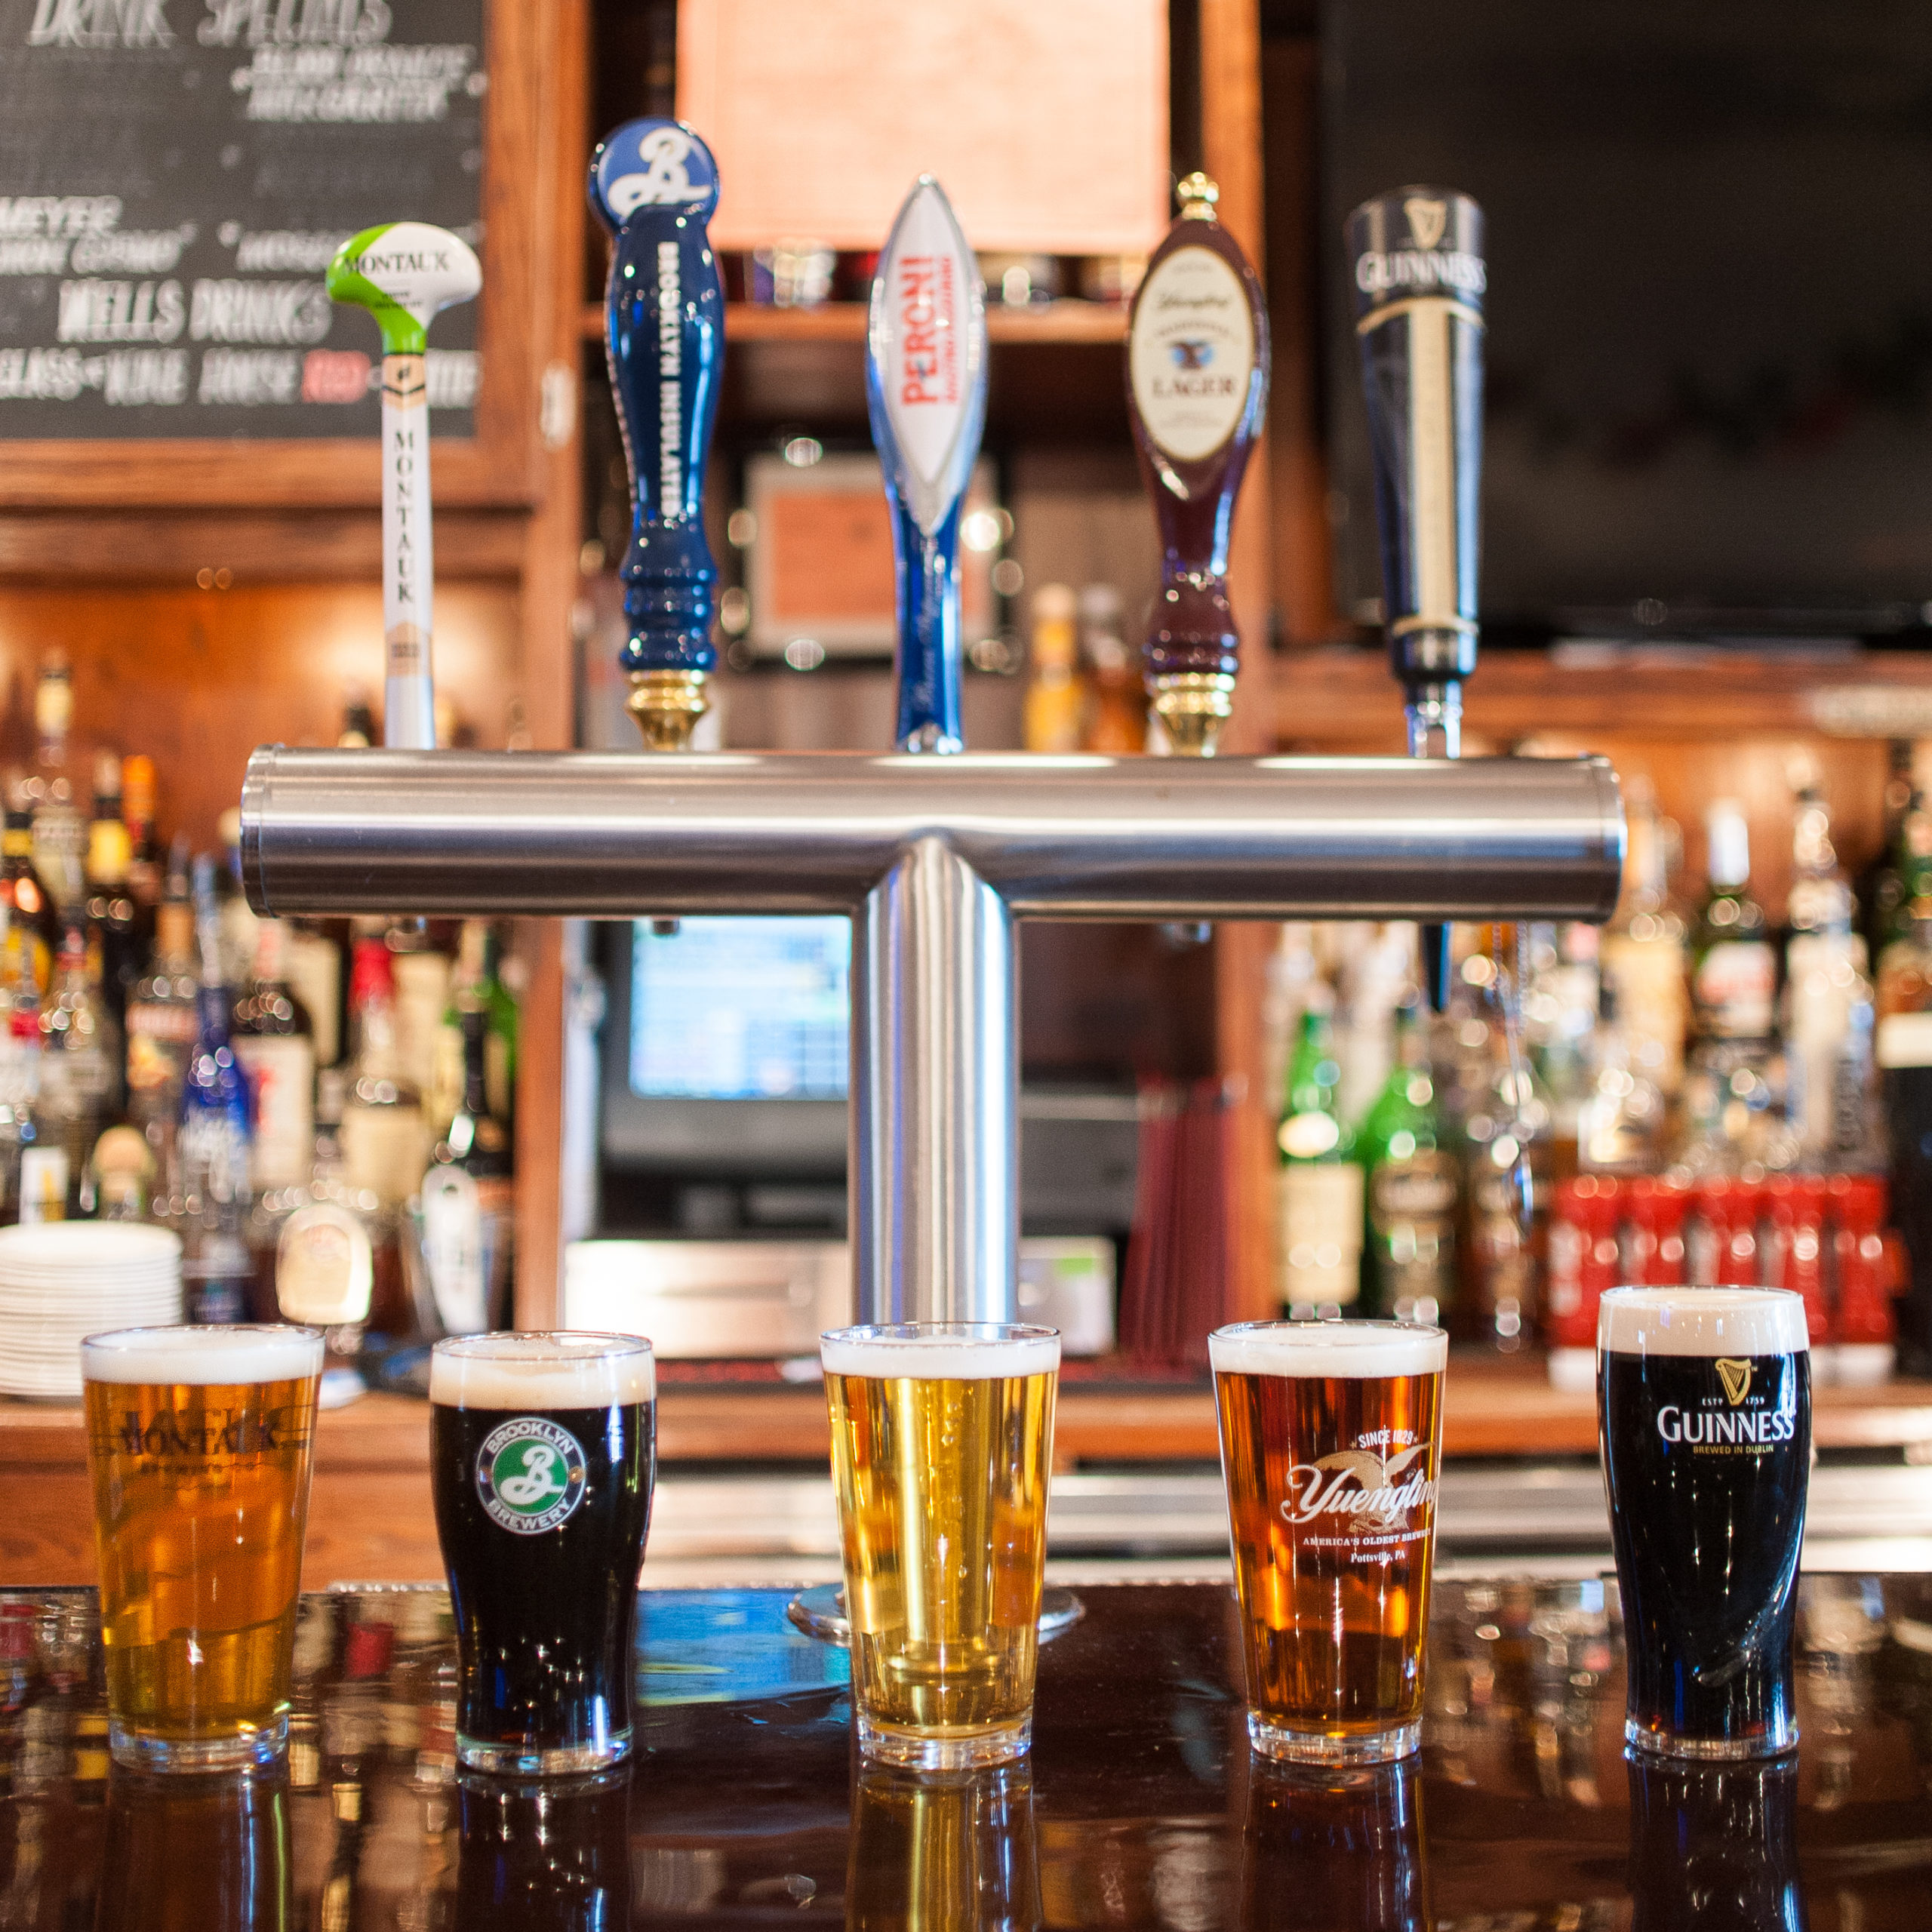 Beers on tap at Indian Wells Tavern.